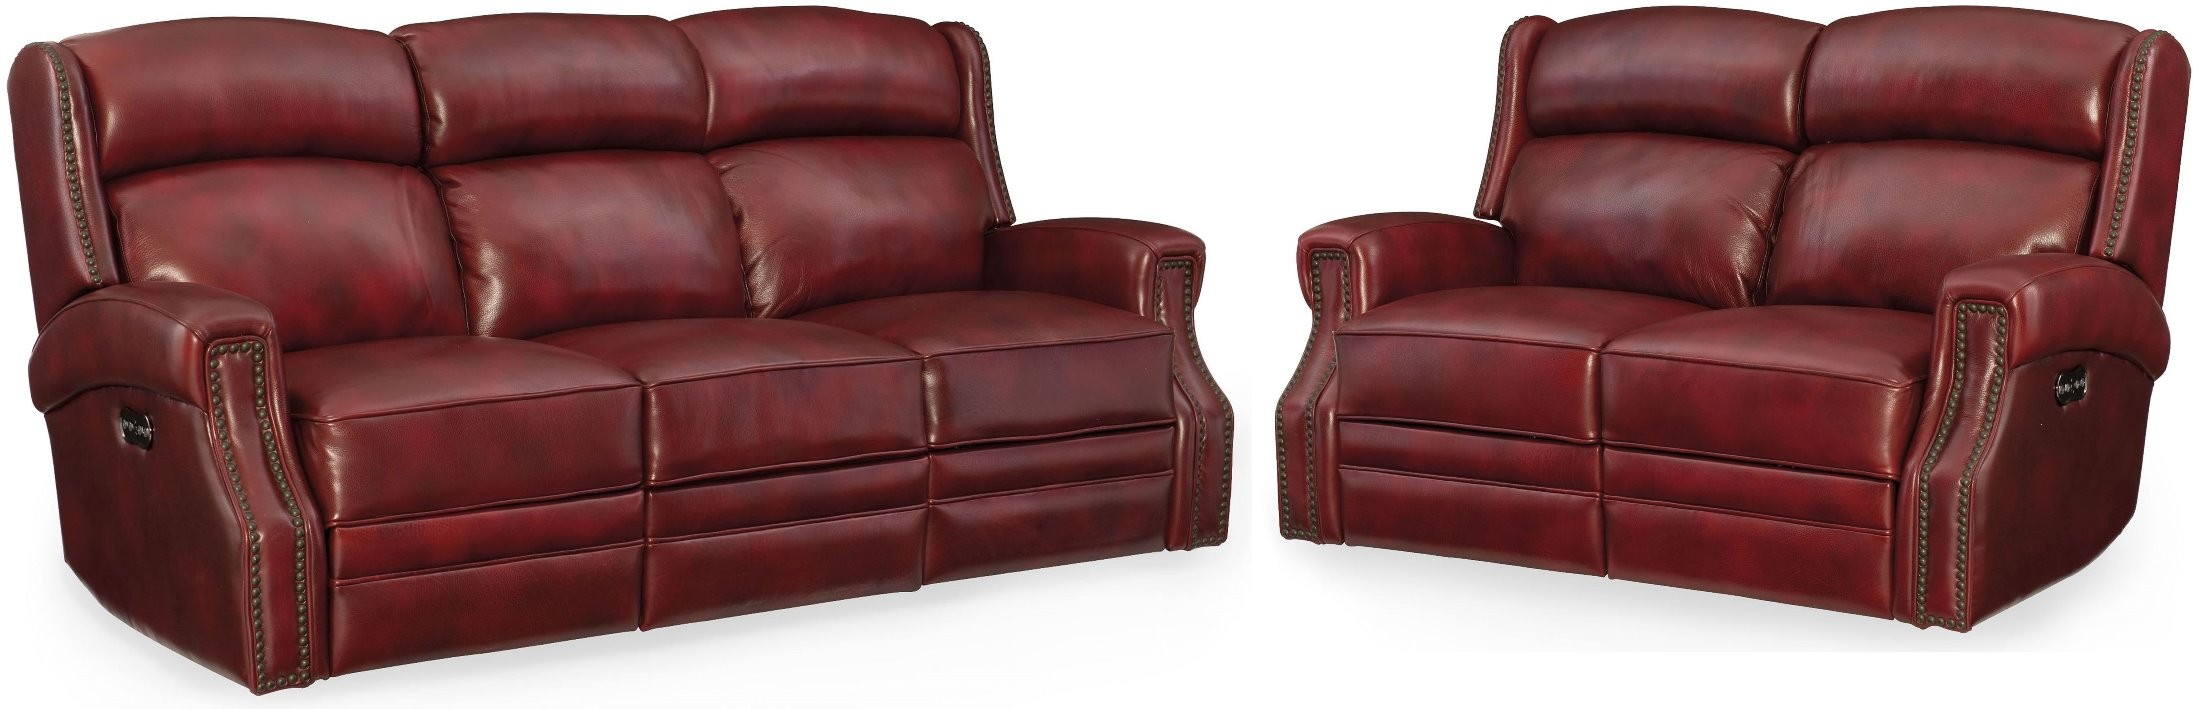 Carlisle Red Leather Power Reclining Living Room Set With Power Headrest 1stopbedrooms